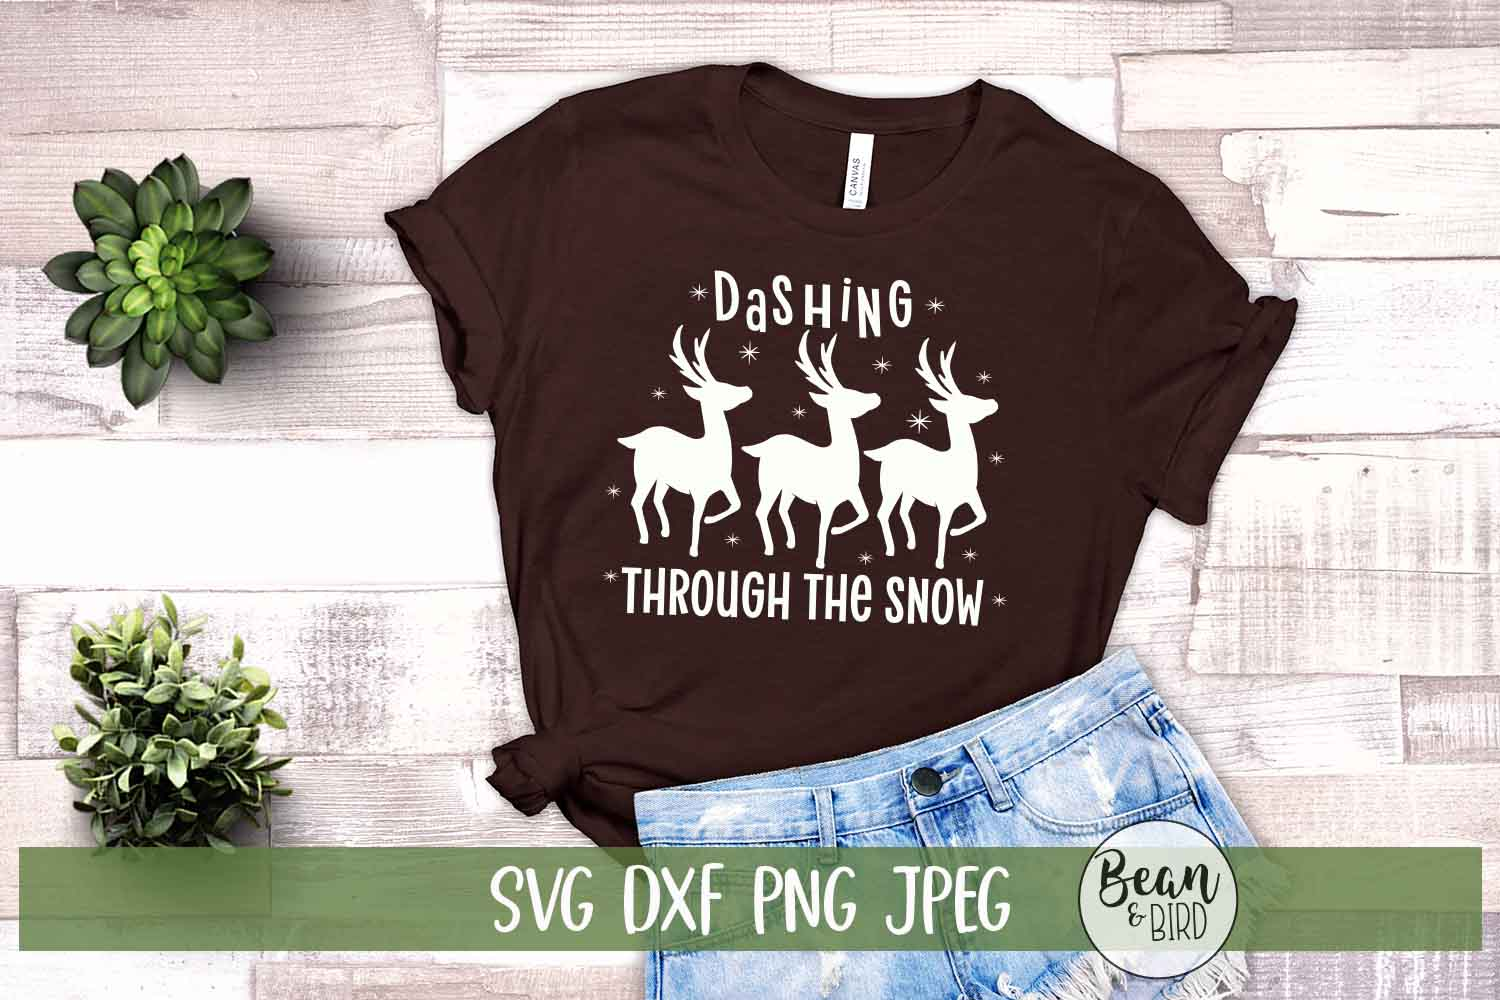 Download Free Dashing Through The Snow Graphic By Jessica Maike Creative Fabrica for Cricut Explore, Silhouette and other cutting machines.